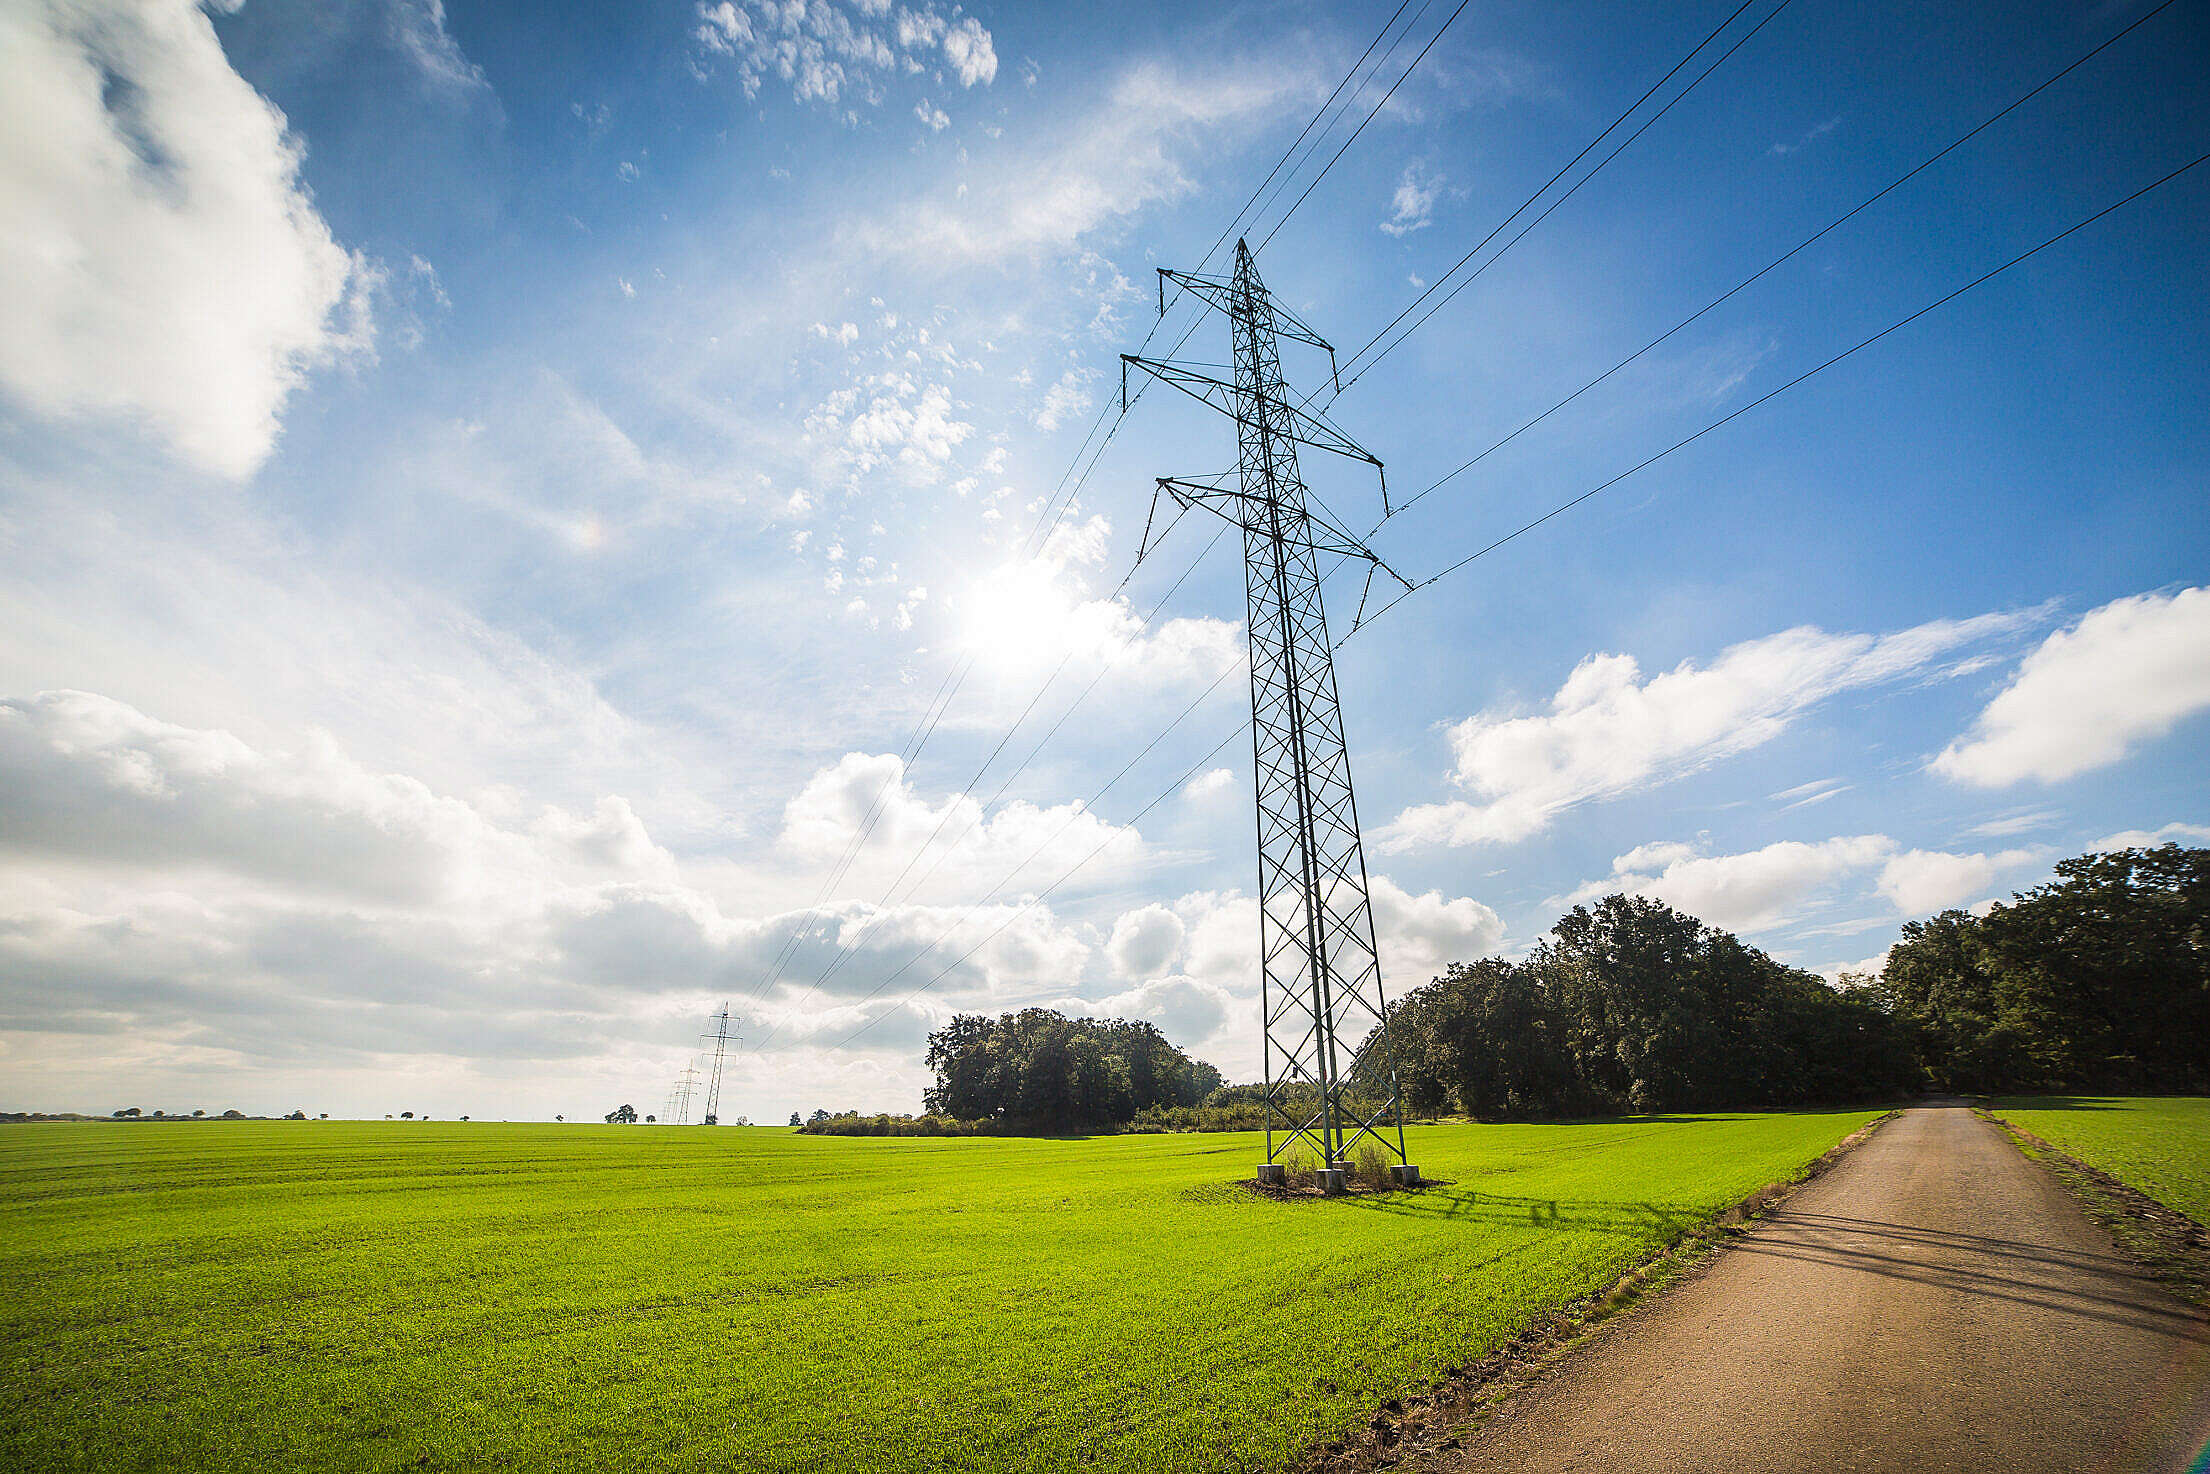 Road Under Power Line Electricity Pylons Free Stock Photo